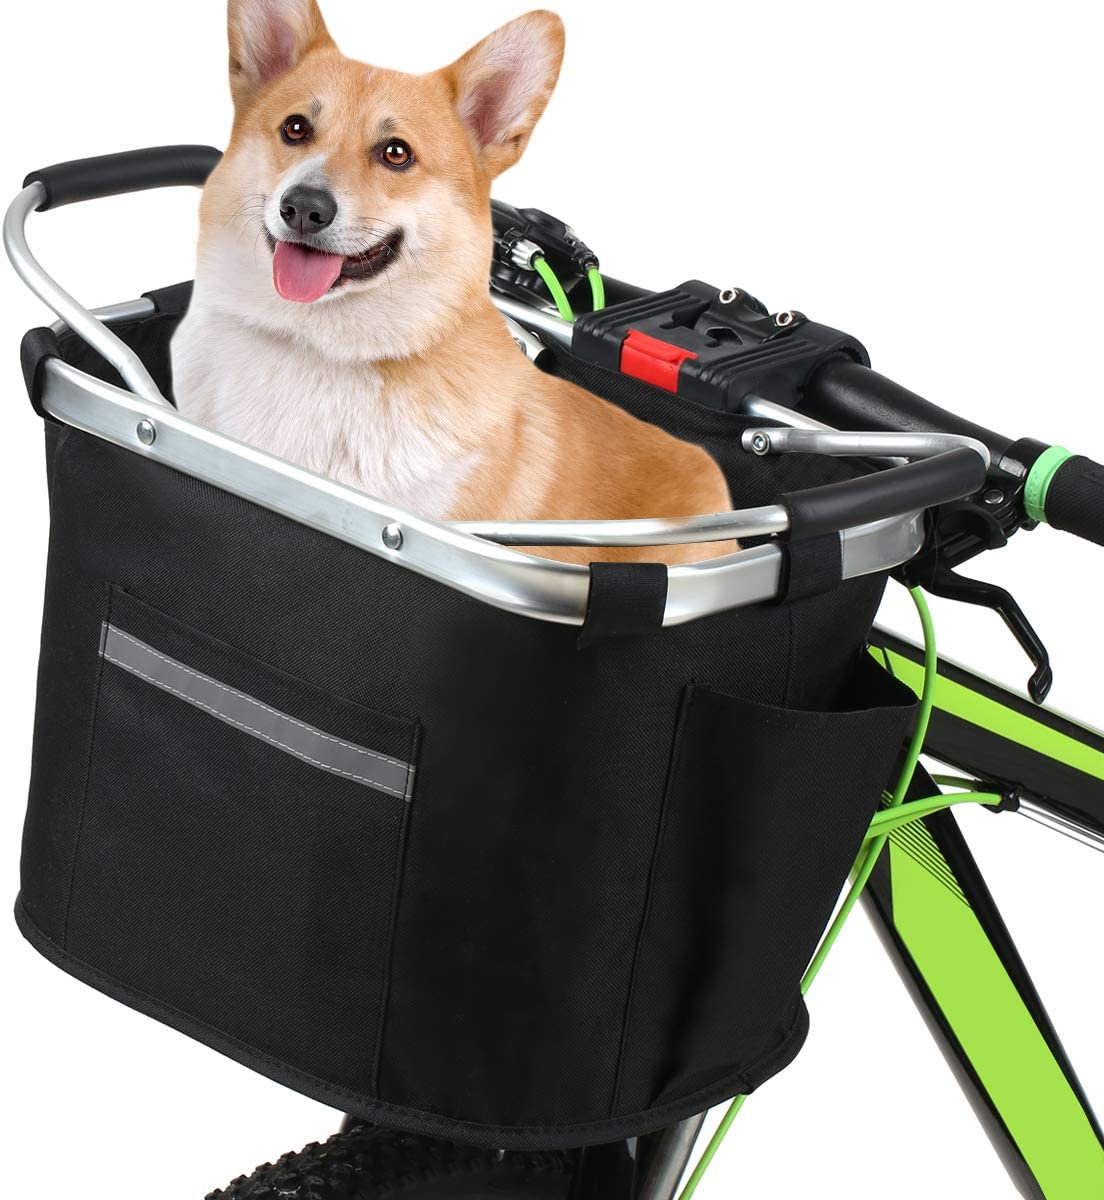 Folding Small Pet Cat Dog Carrier Front Handlebar Basket for Most Mountain Bikes and Bicycles Easy Install Quick Released Picnic Shopping Bag Bike Basket Detachable Bicycle Basket